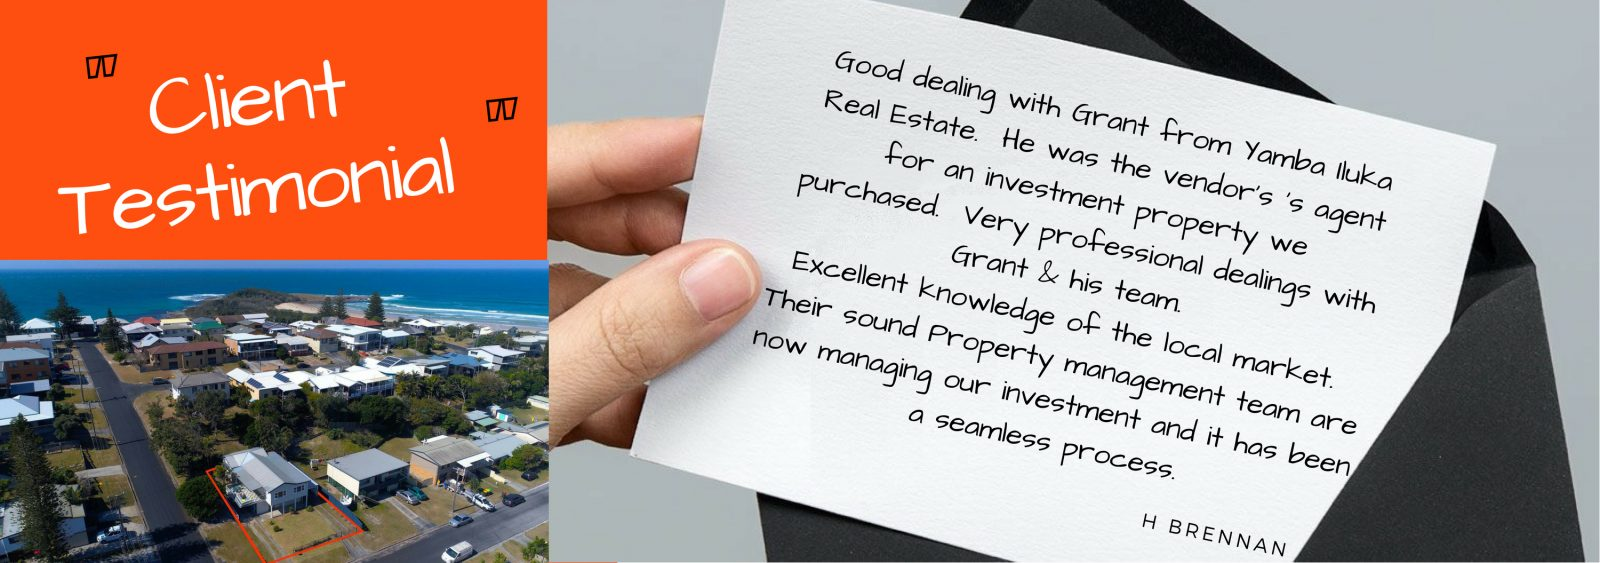 Testimonial - Good dealing with Grant from Yamba Iluka Real Estate. He was the vendor's 's agent for an investment property we purchased. Very professional dealings with Grant & his team. Excellent knowledge of the local market. Their sound Property management team are now managing our investment and it has been a seamless process. H Brennan